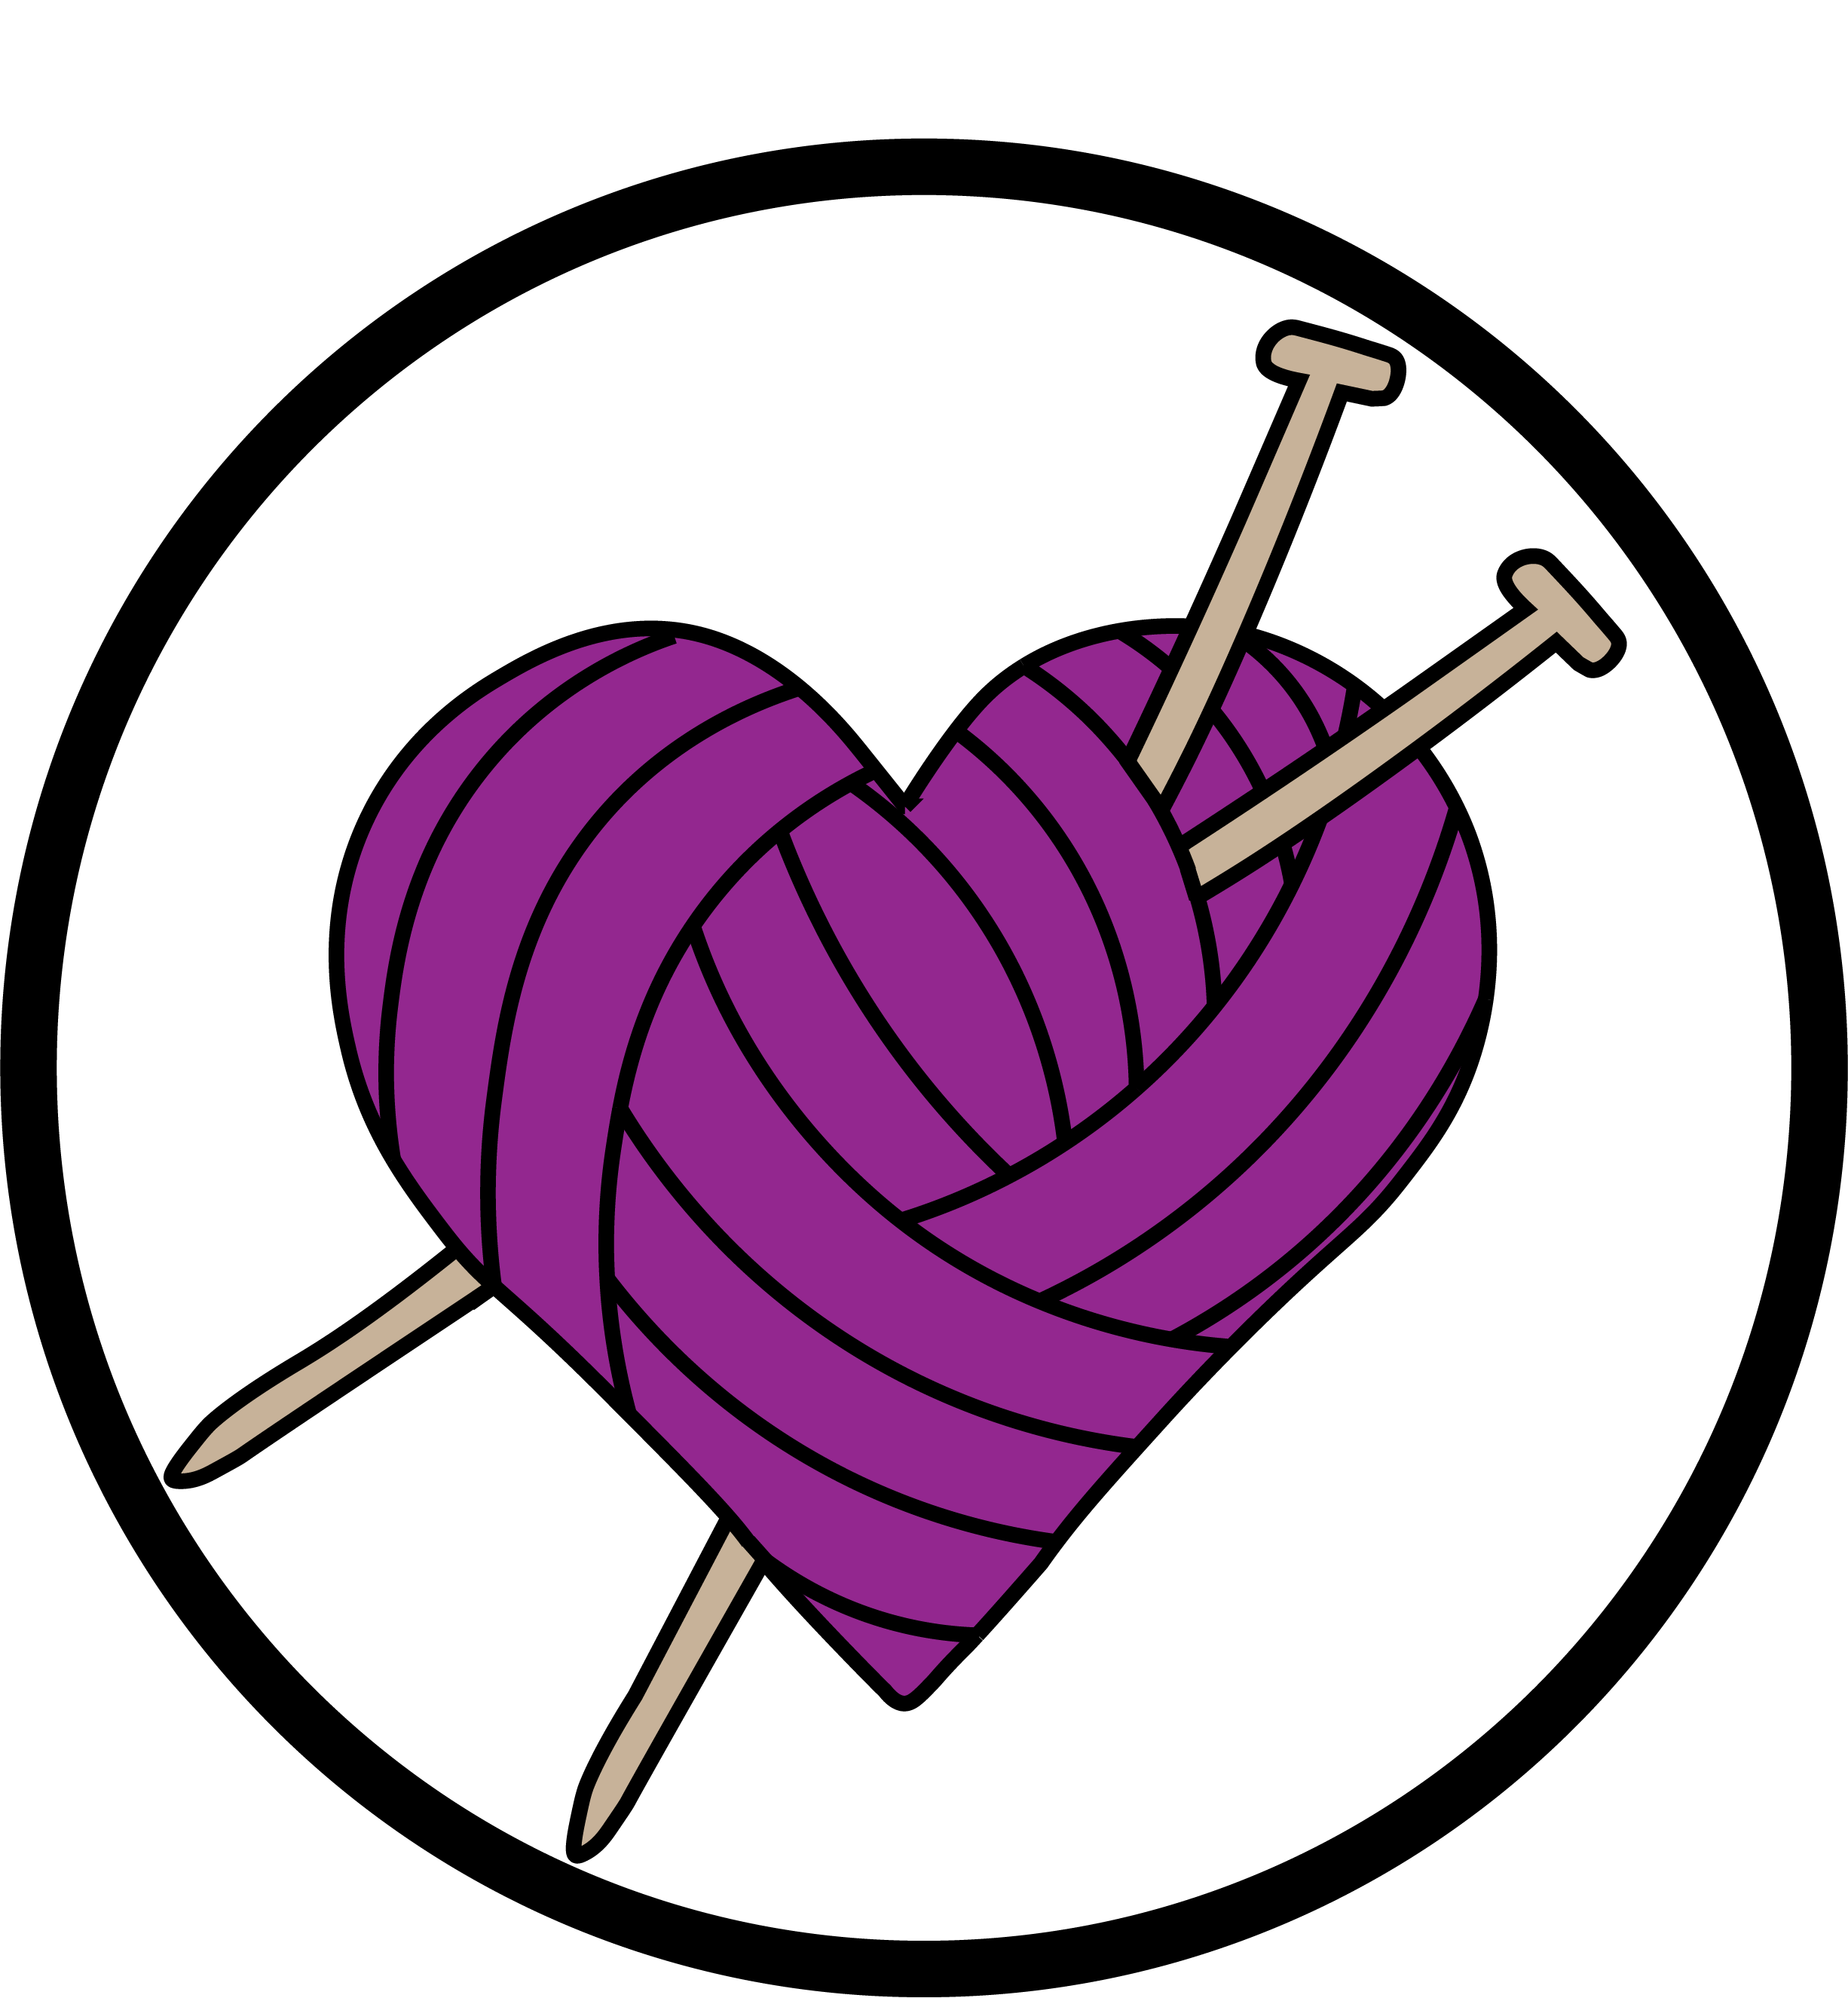 Crochet clipart knitting group. Welcome elissa s creative